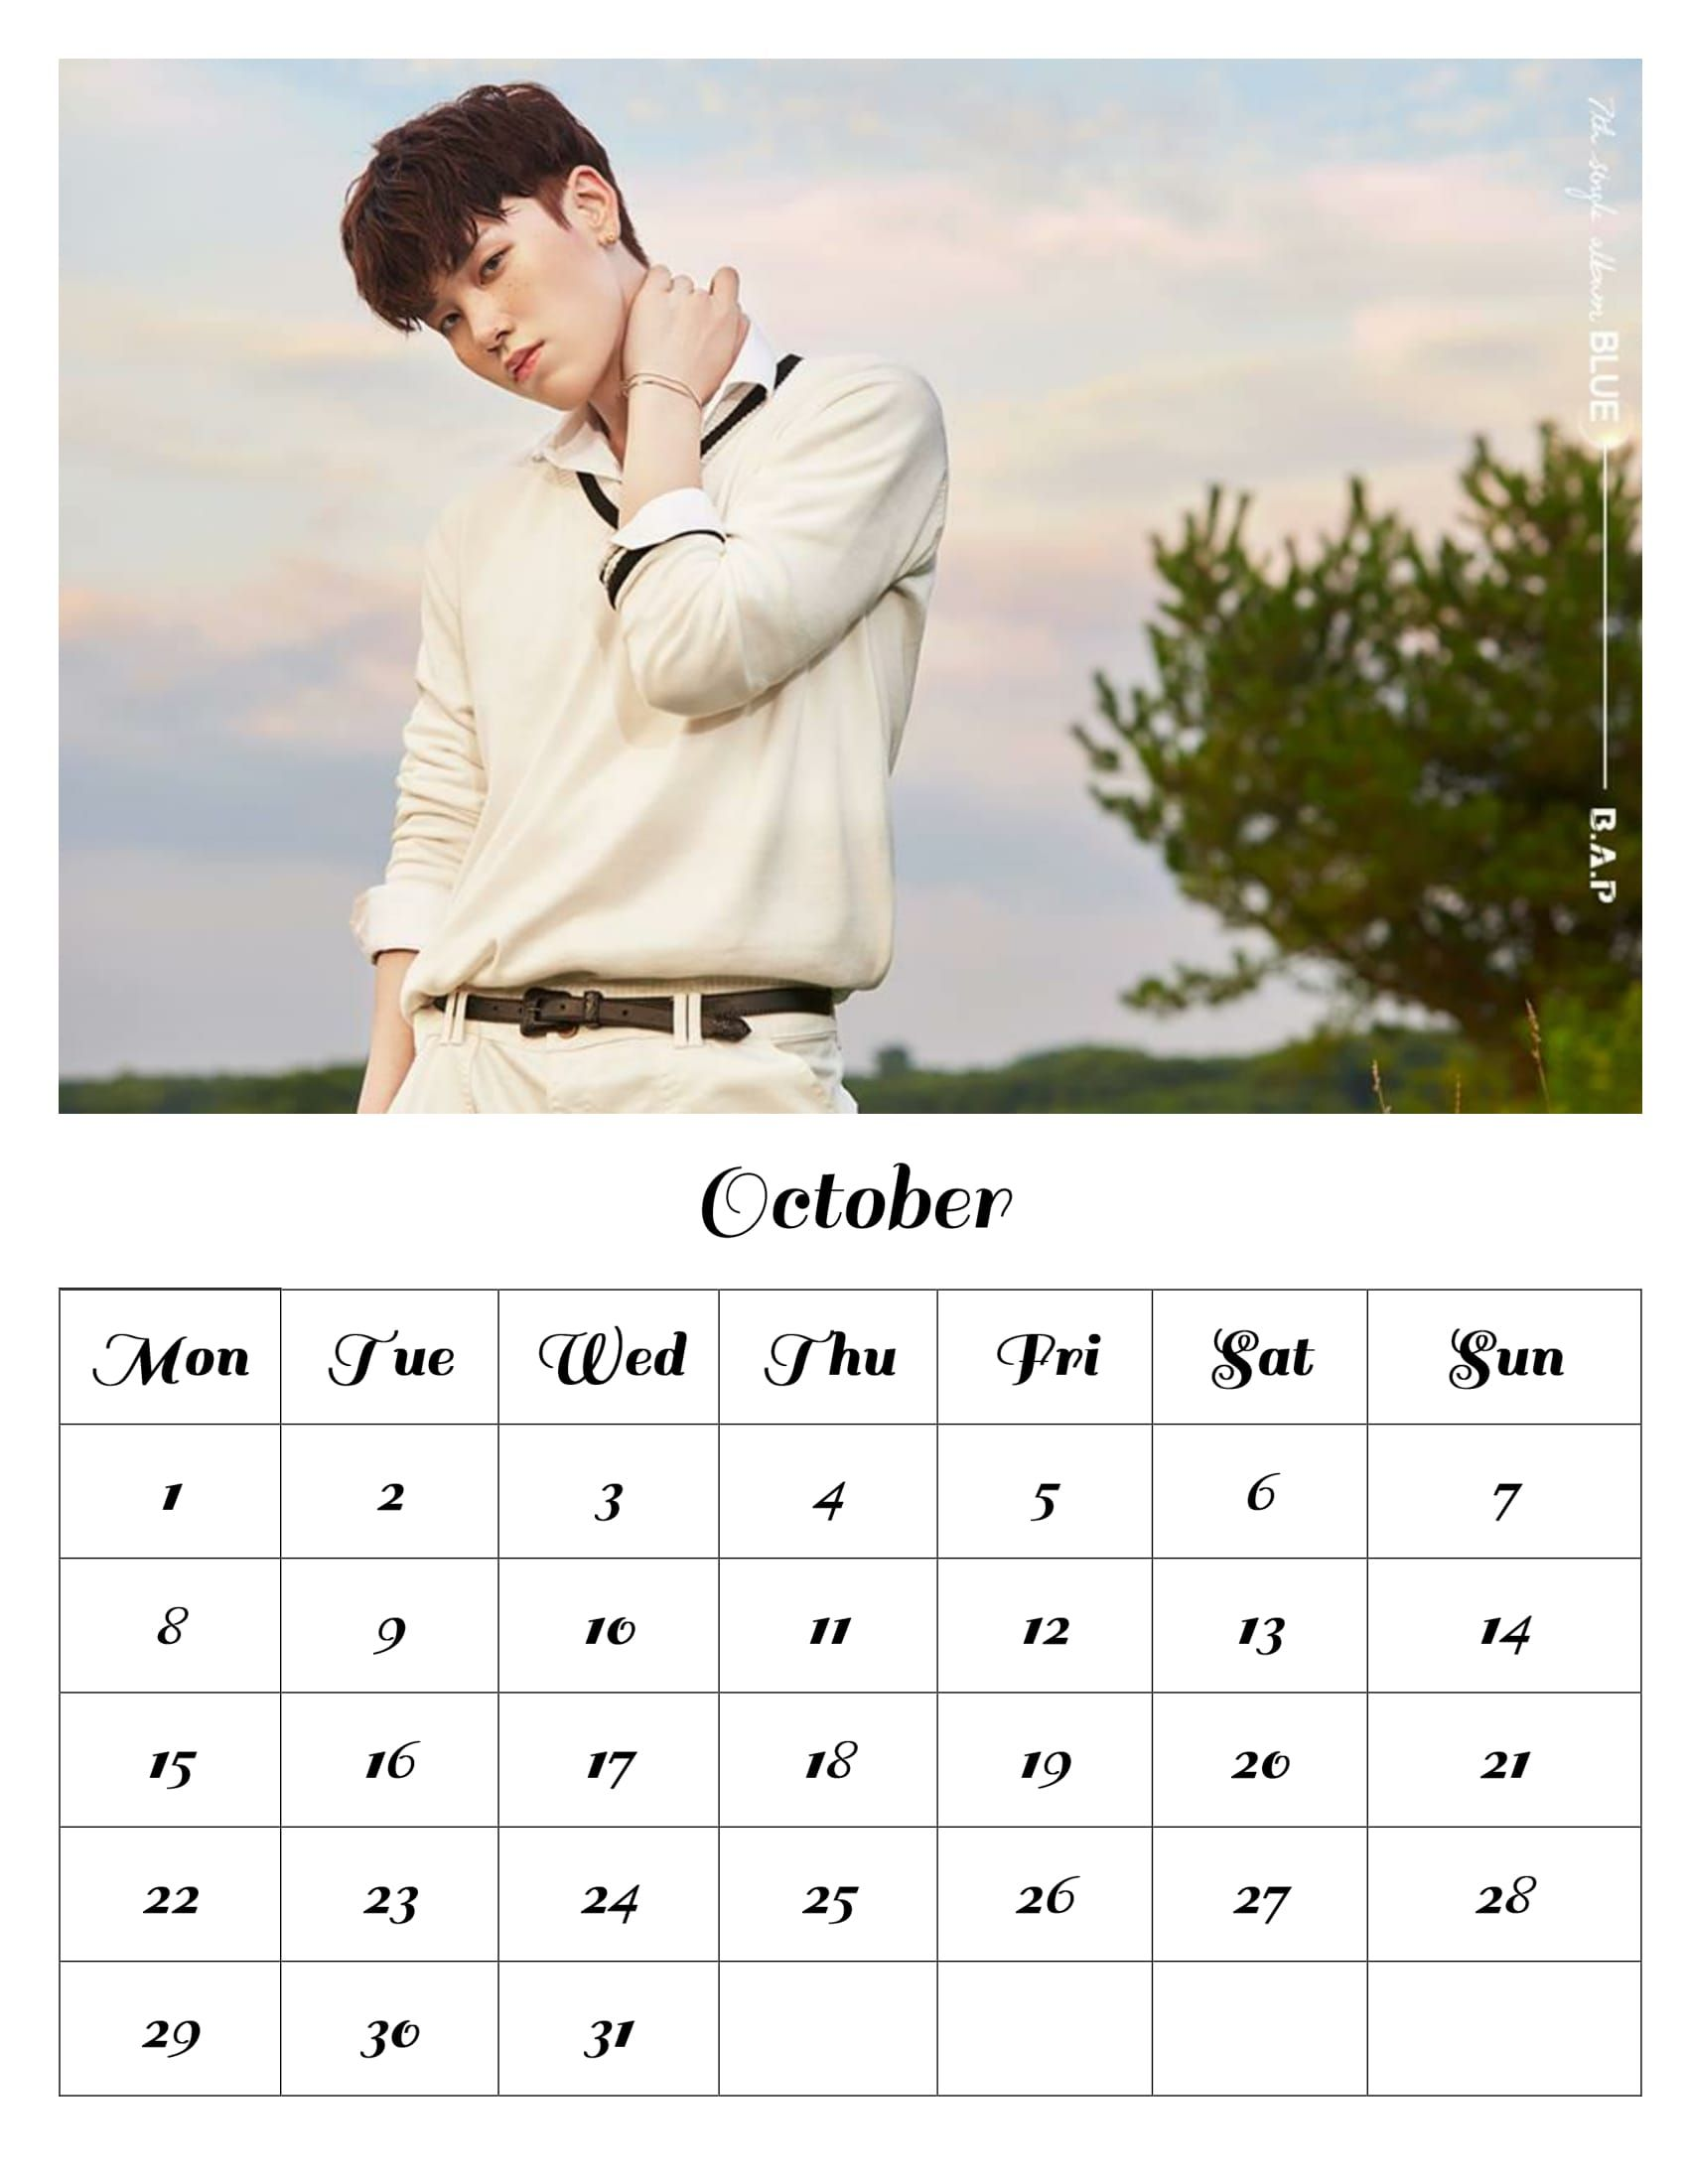 Free download bap monthly calendar october 2018 zelo free free download bap monthly calendar october 2018 zelo malvernweather Choice Image